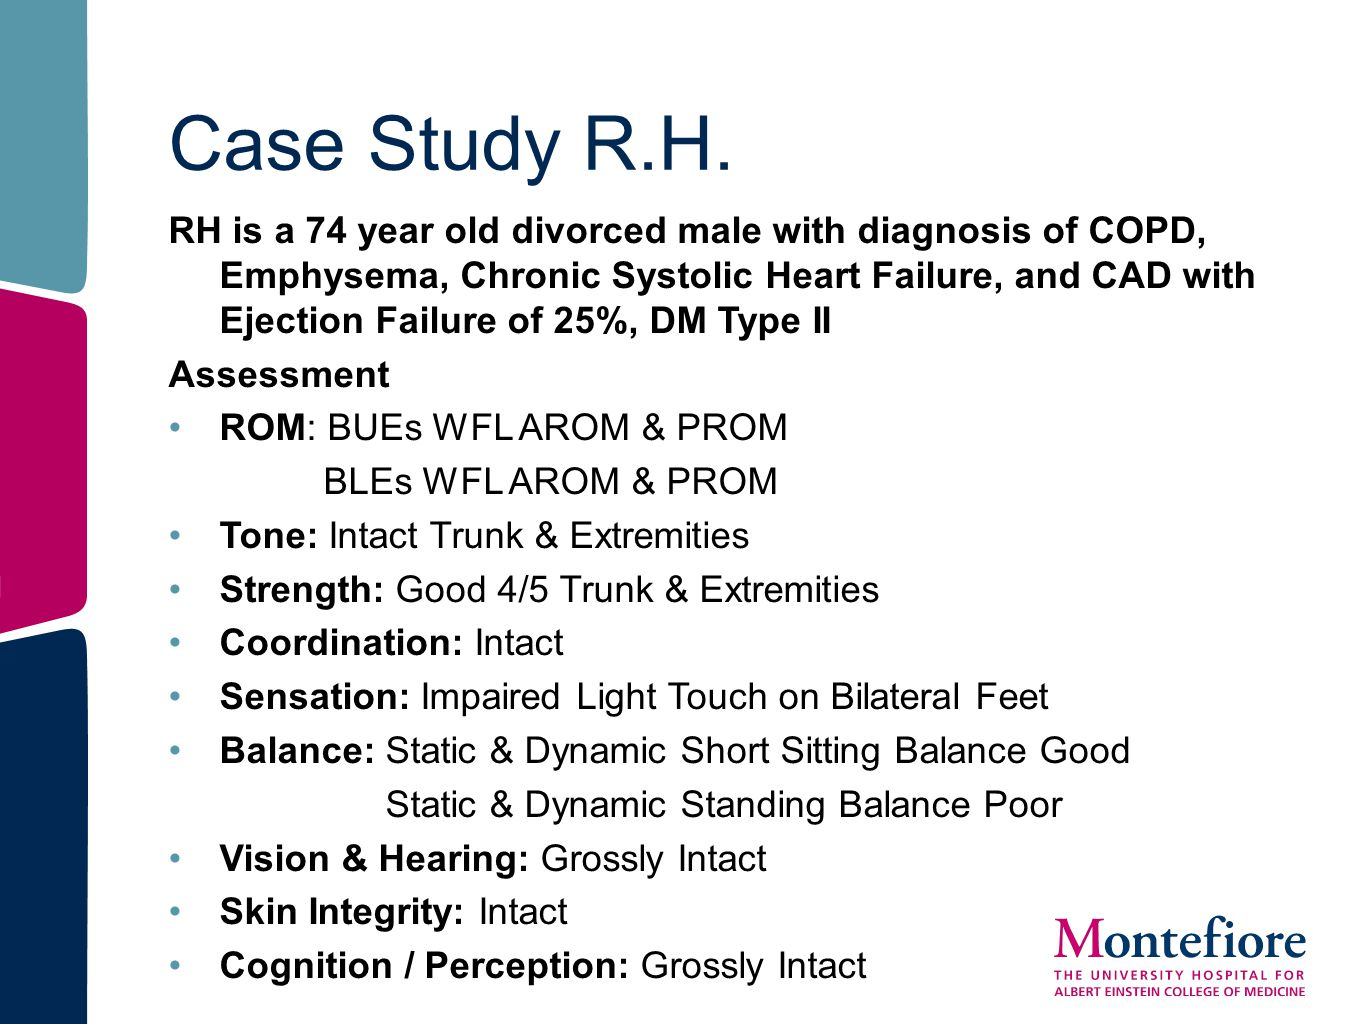 Case Study R.H. RH is a 74 year old divorced male with diagnosis of COPD, Emphysema, Chronic Systolic Heart Failure, and CAD with Ejection Failure of